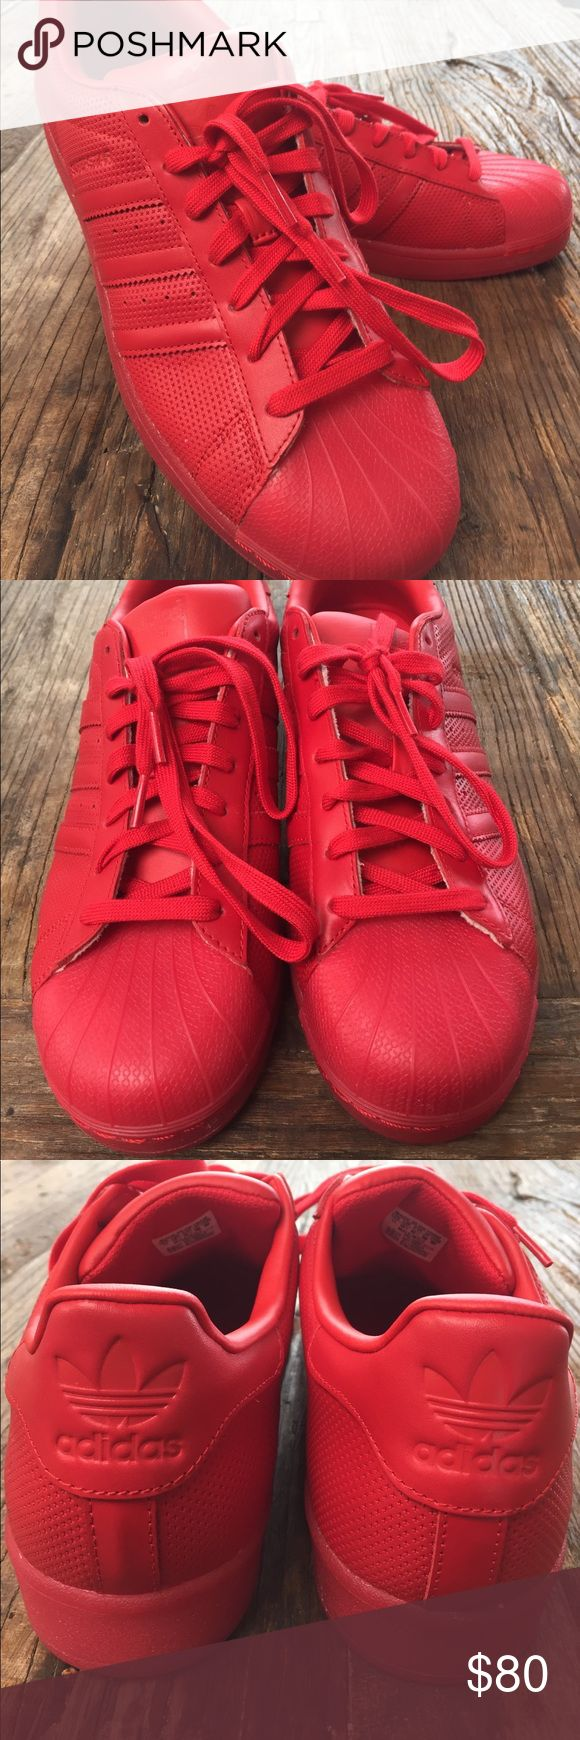 Rare Brand New All Red Adidas Shell Toes Never been worn and brand new adidas Shoes Sneakers